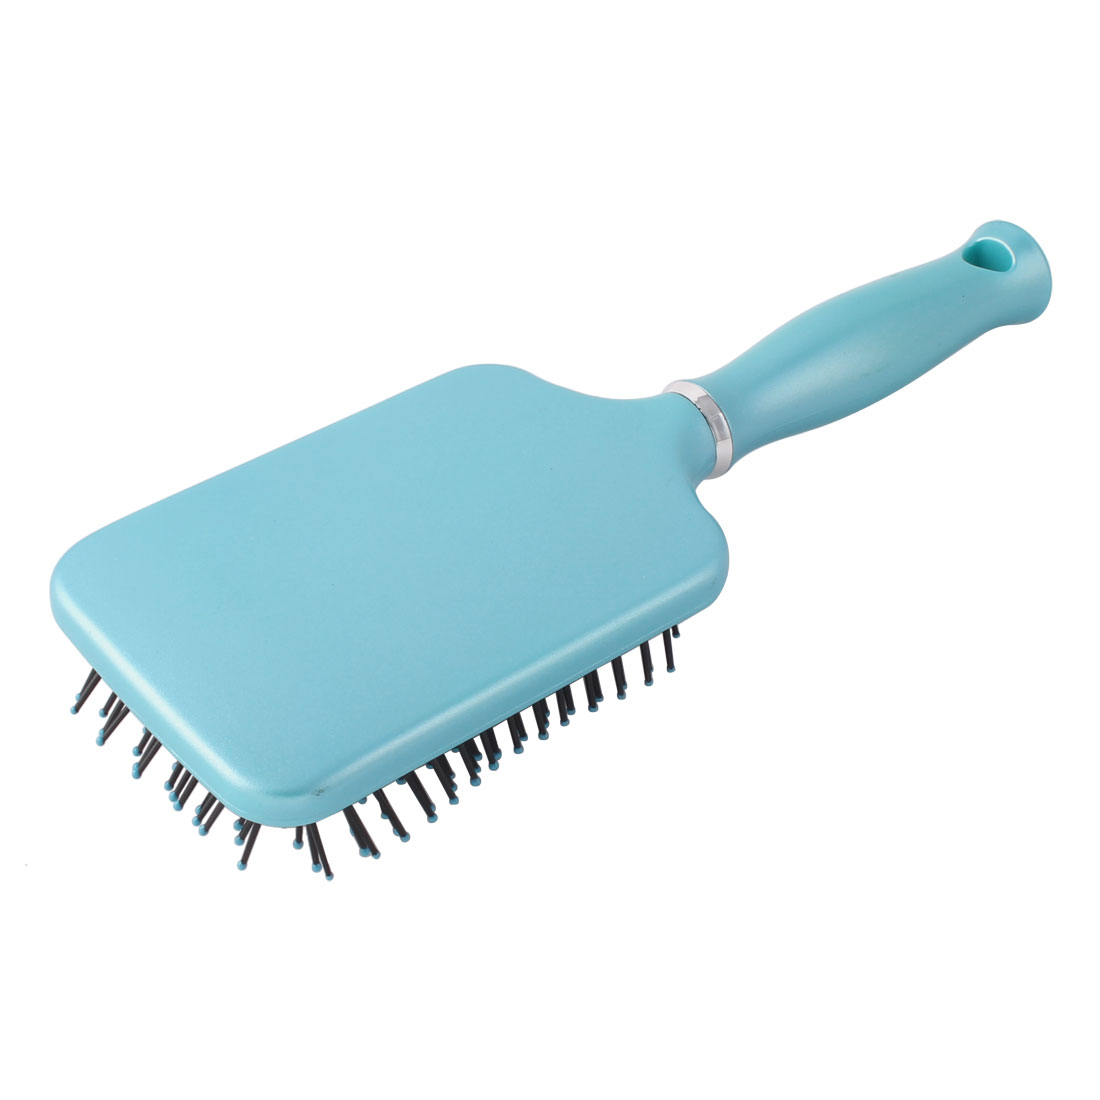 Salon Plastic Rectangle Shape Anti-static Curly Straight Hair Style Comb Sky Blue 25cm Length